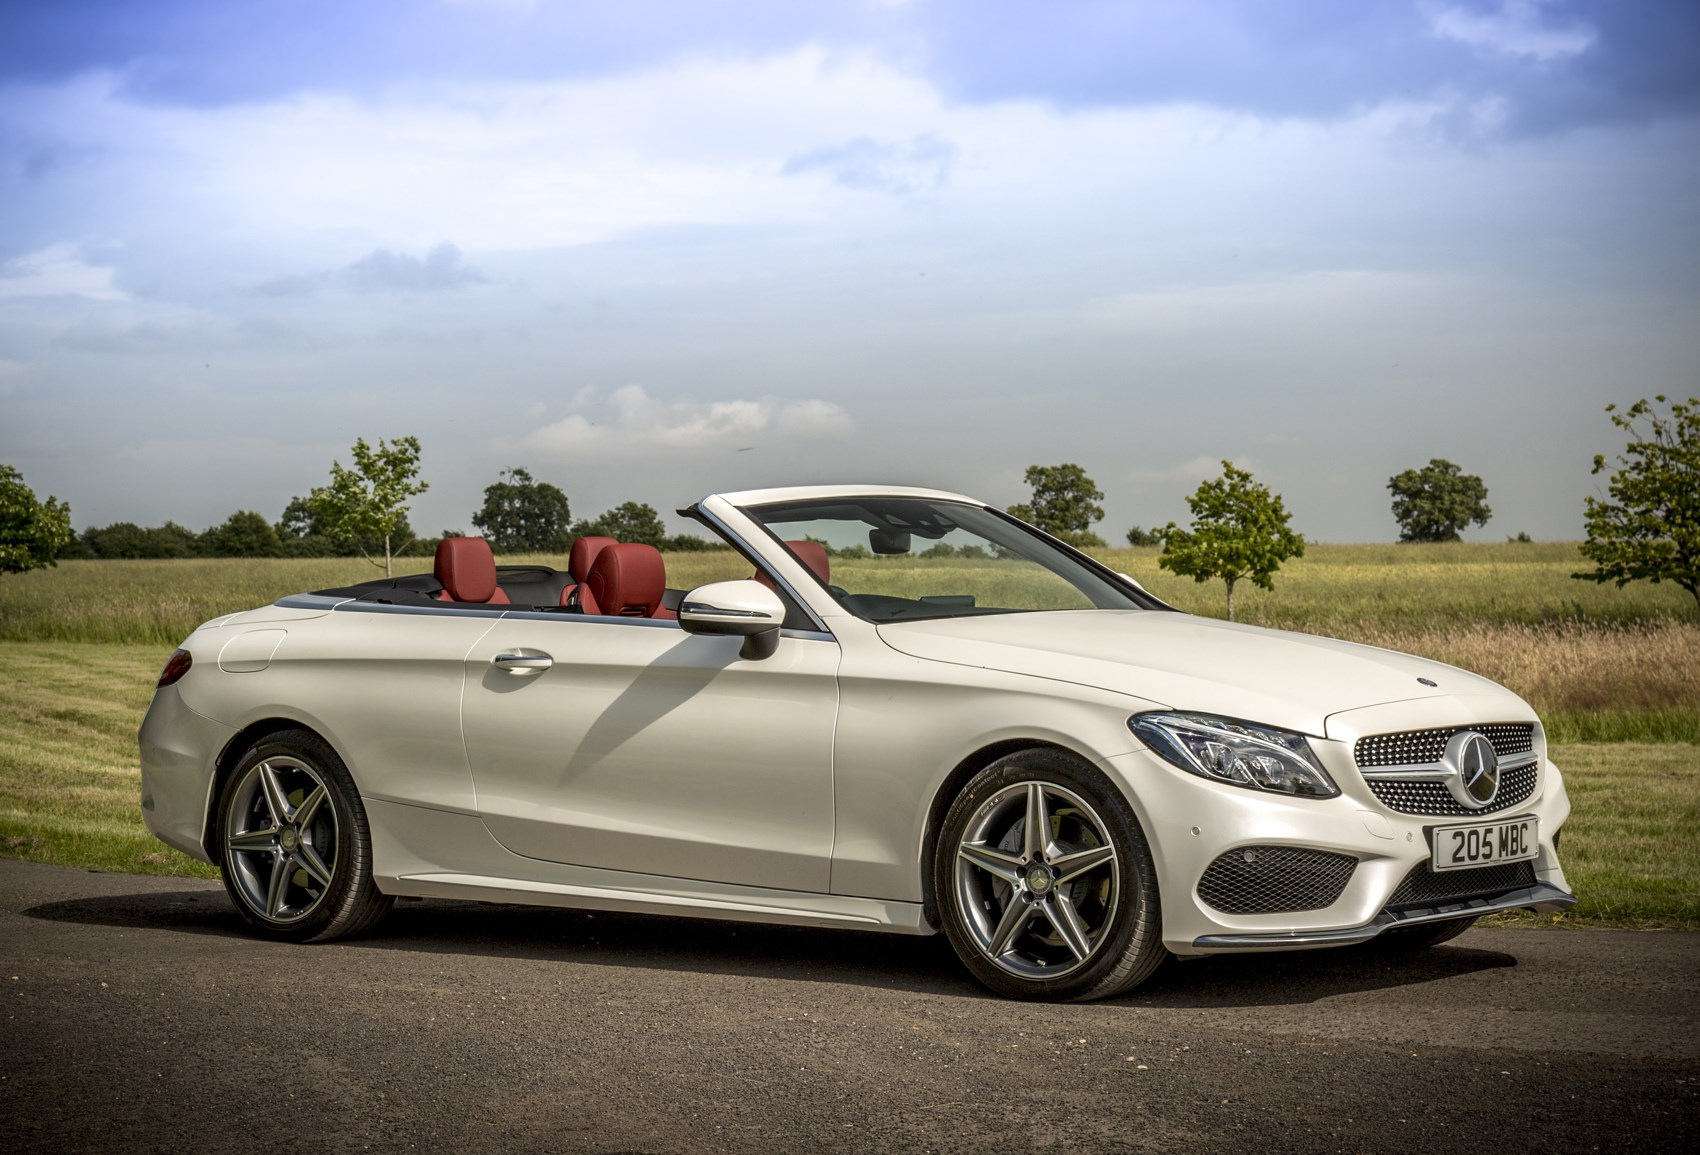 mercedes benz c class cabriolet review 2016 parkers. Black Bedroom Furniture Sets. Home Design Ideas